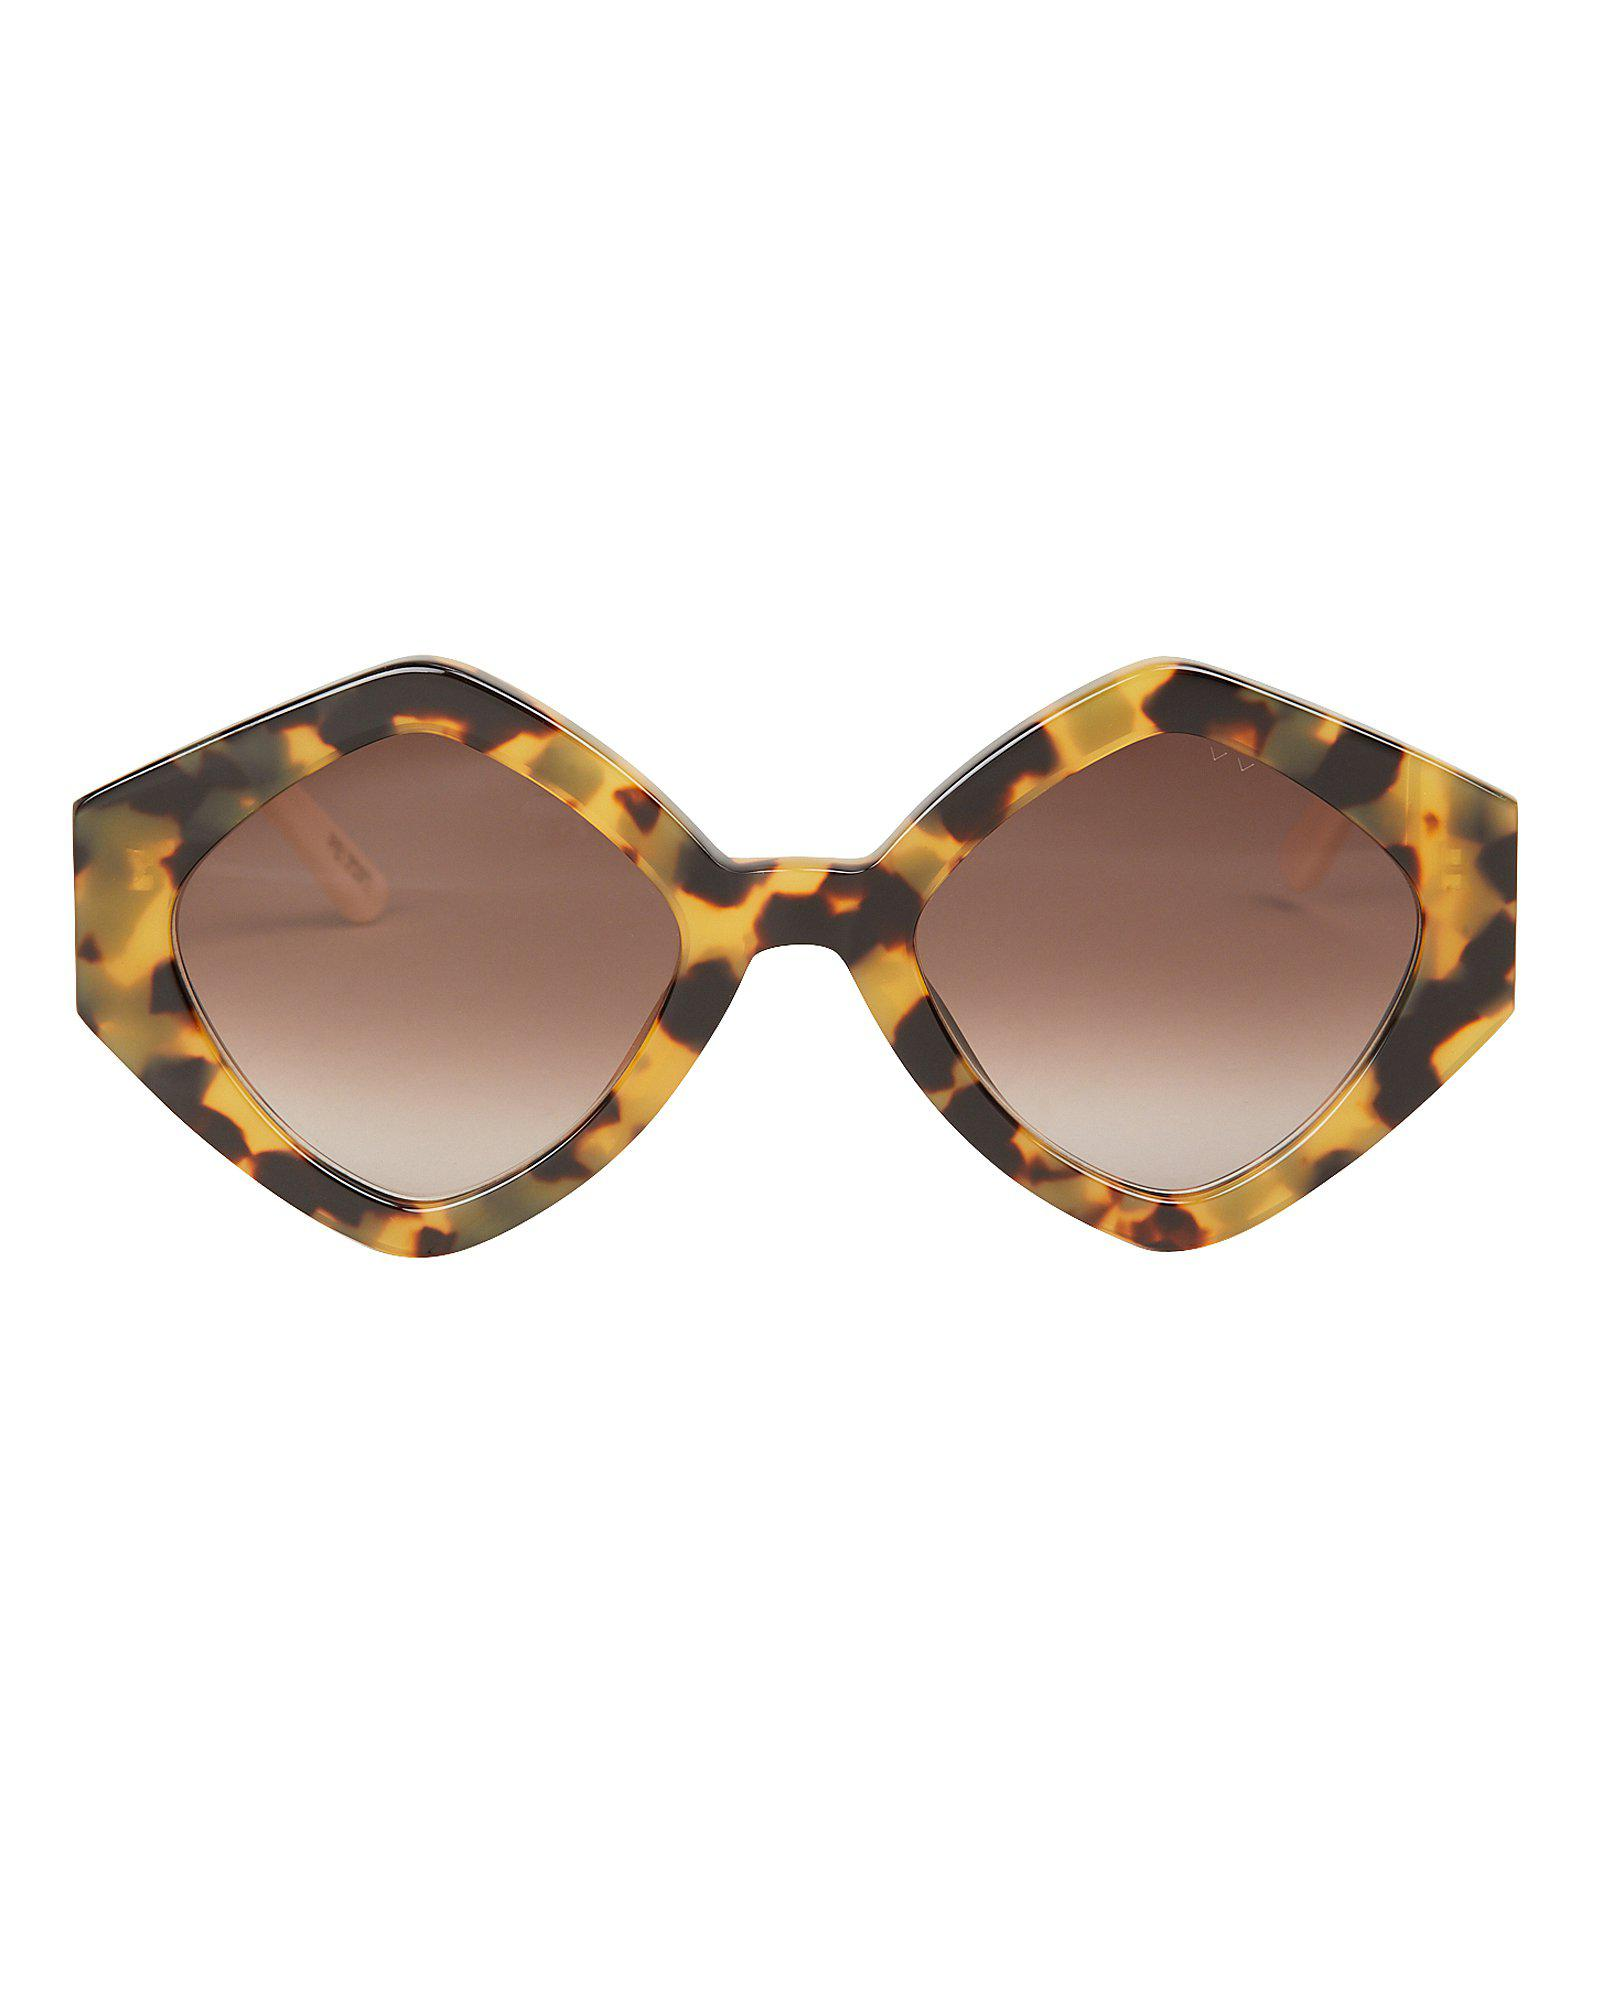 ee26f138bb Lyst - Pared Eyewear Romeo And Juliet Sunglasses in Brown